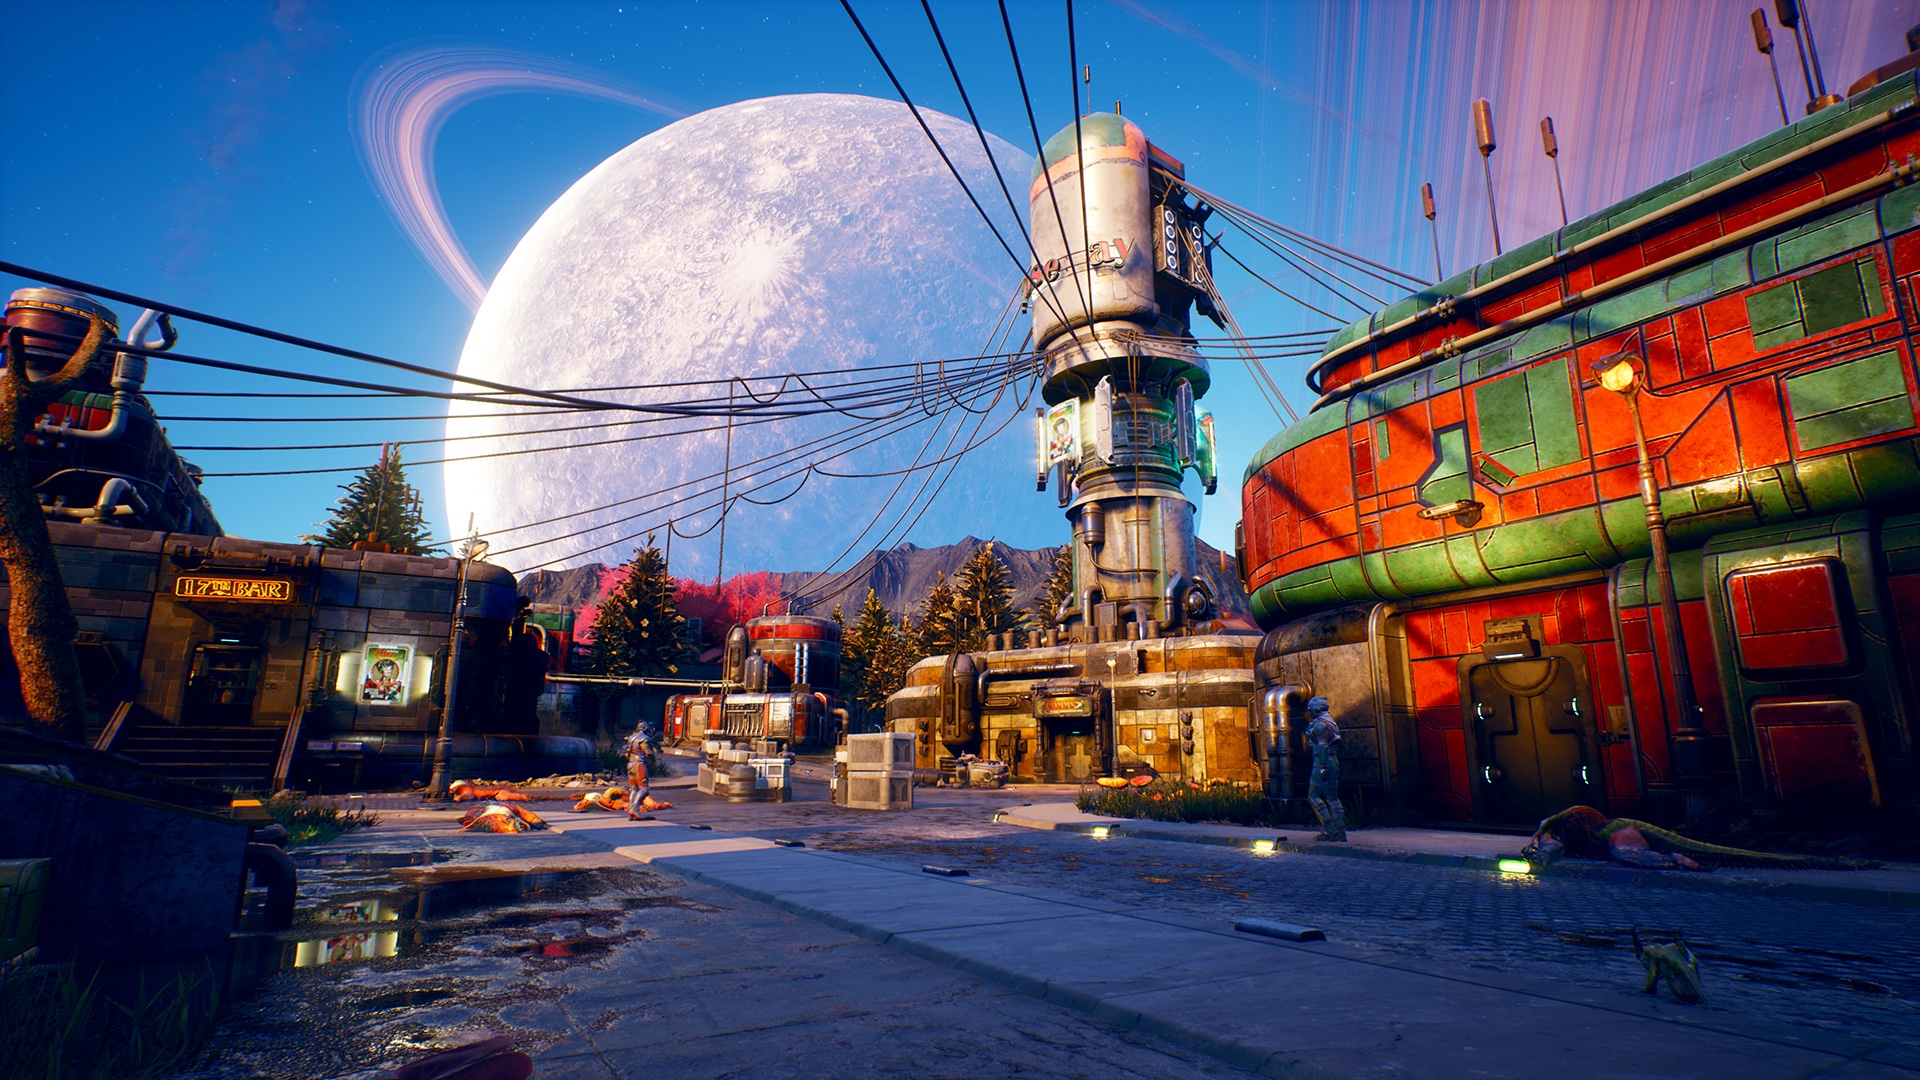 The Outer Worlds The Frightened Engineer Walkthrough Quest Guide The outer worlds is filled with npcs to help, and side missions to finish. the outer worlds the frightened